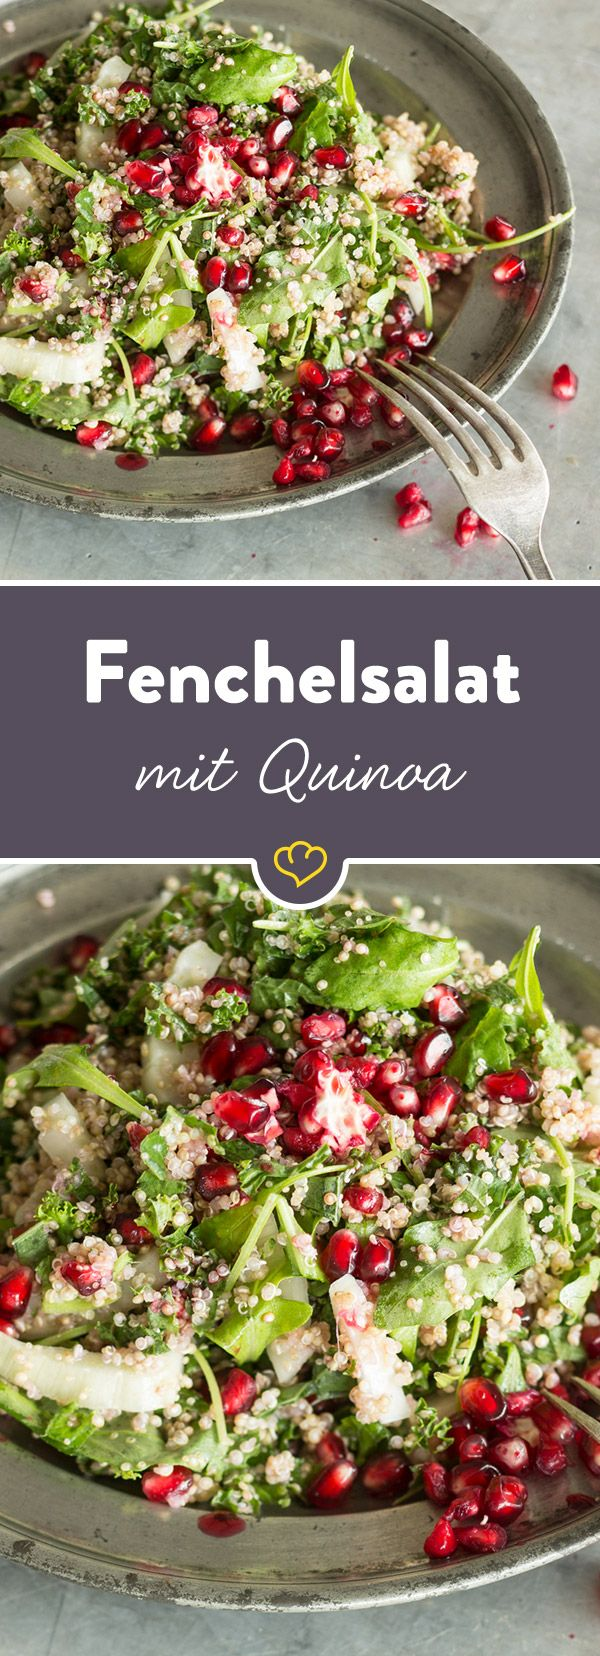 Photo of Fennel salad with quinoa and pomegranate seeds